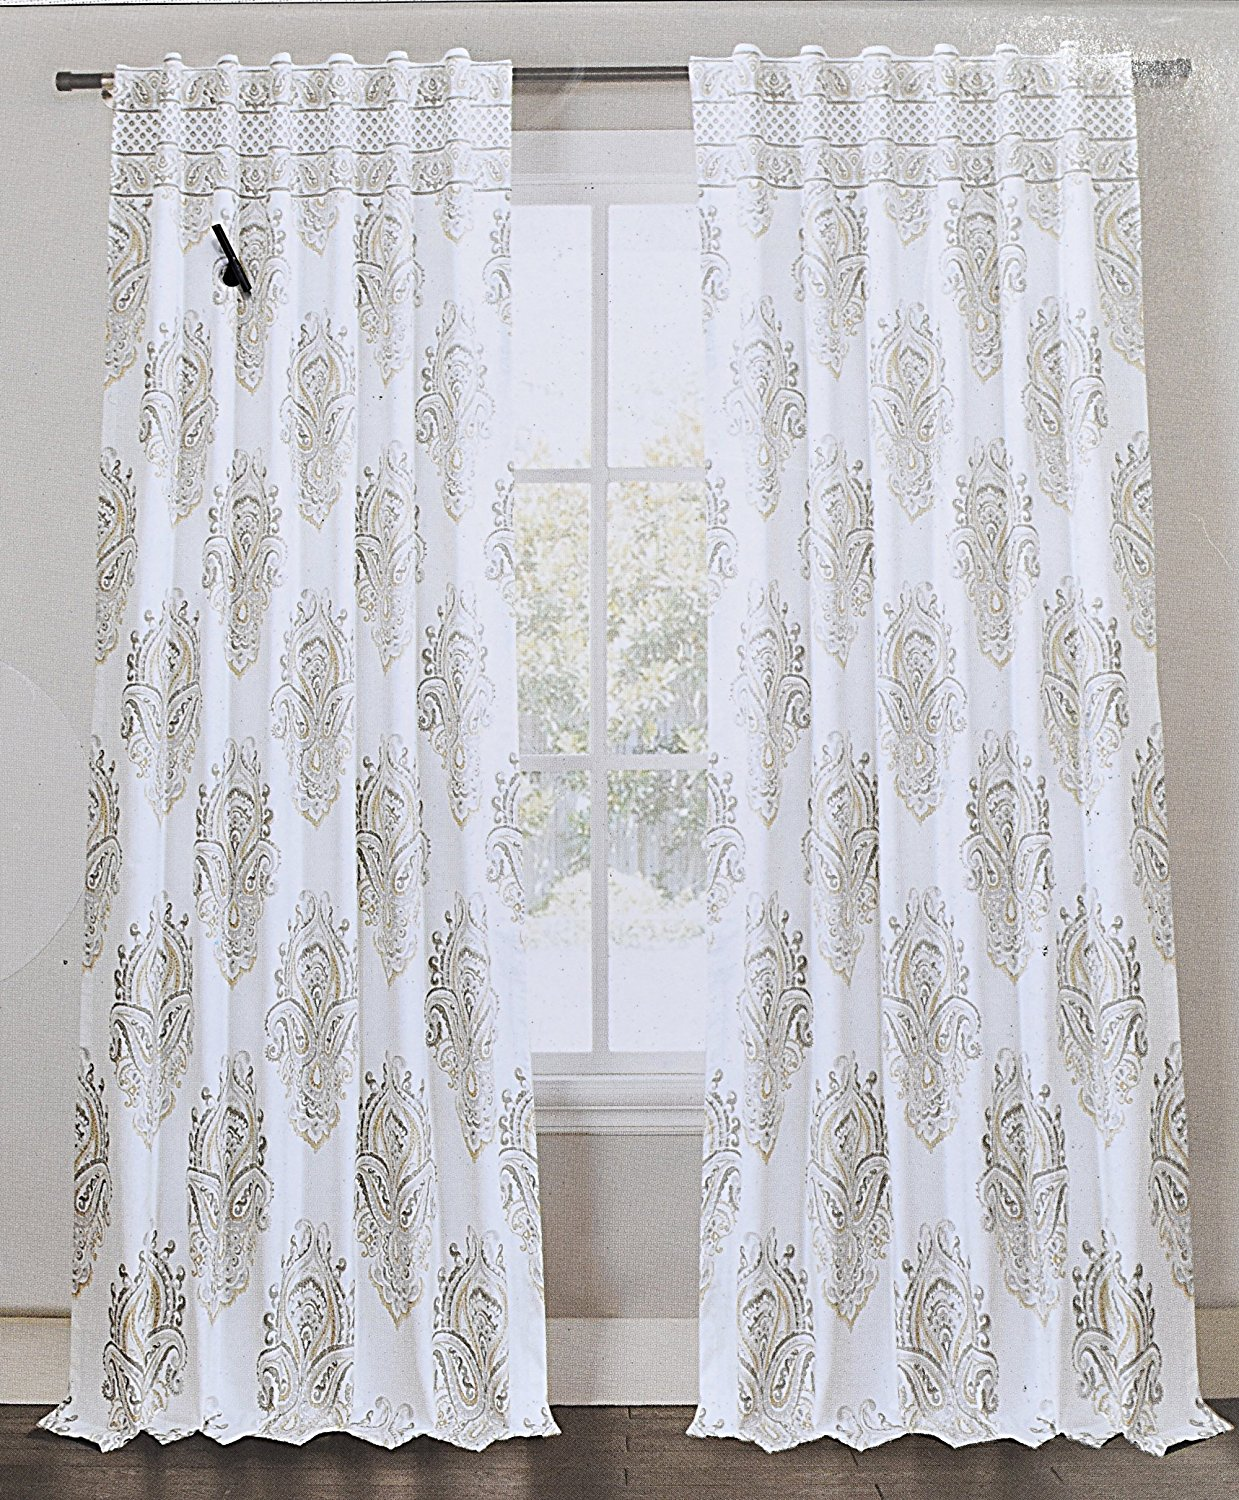 Envogue Medallion Window Curtains Gray Taupe Torino Damask Paisley Pair Of Curtains 2 Window